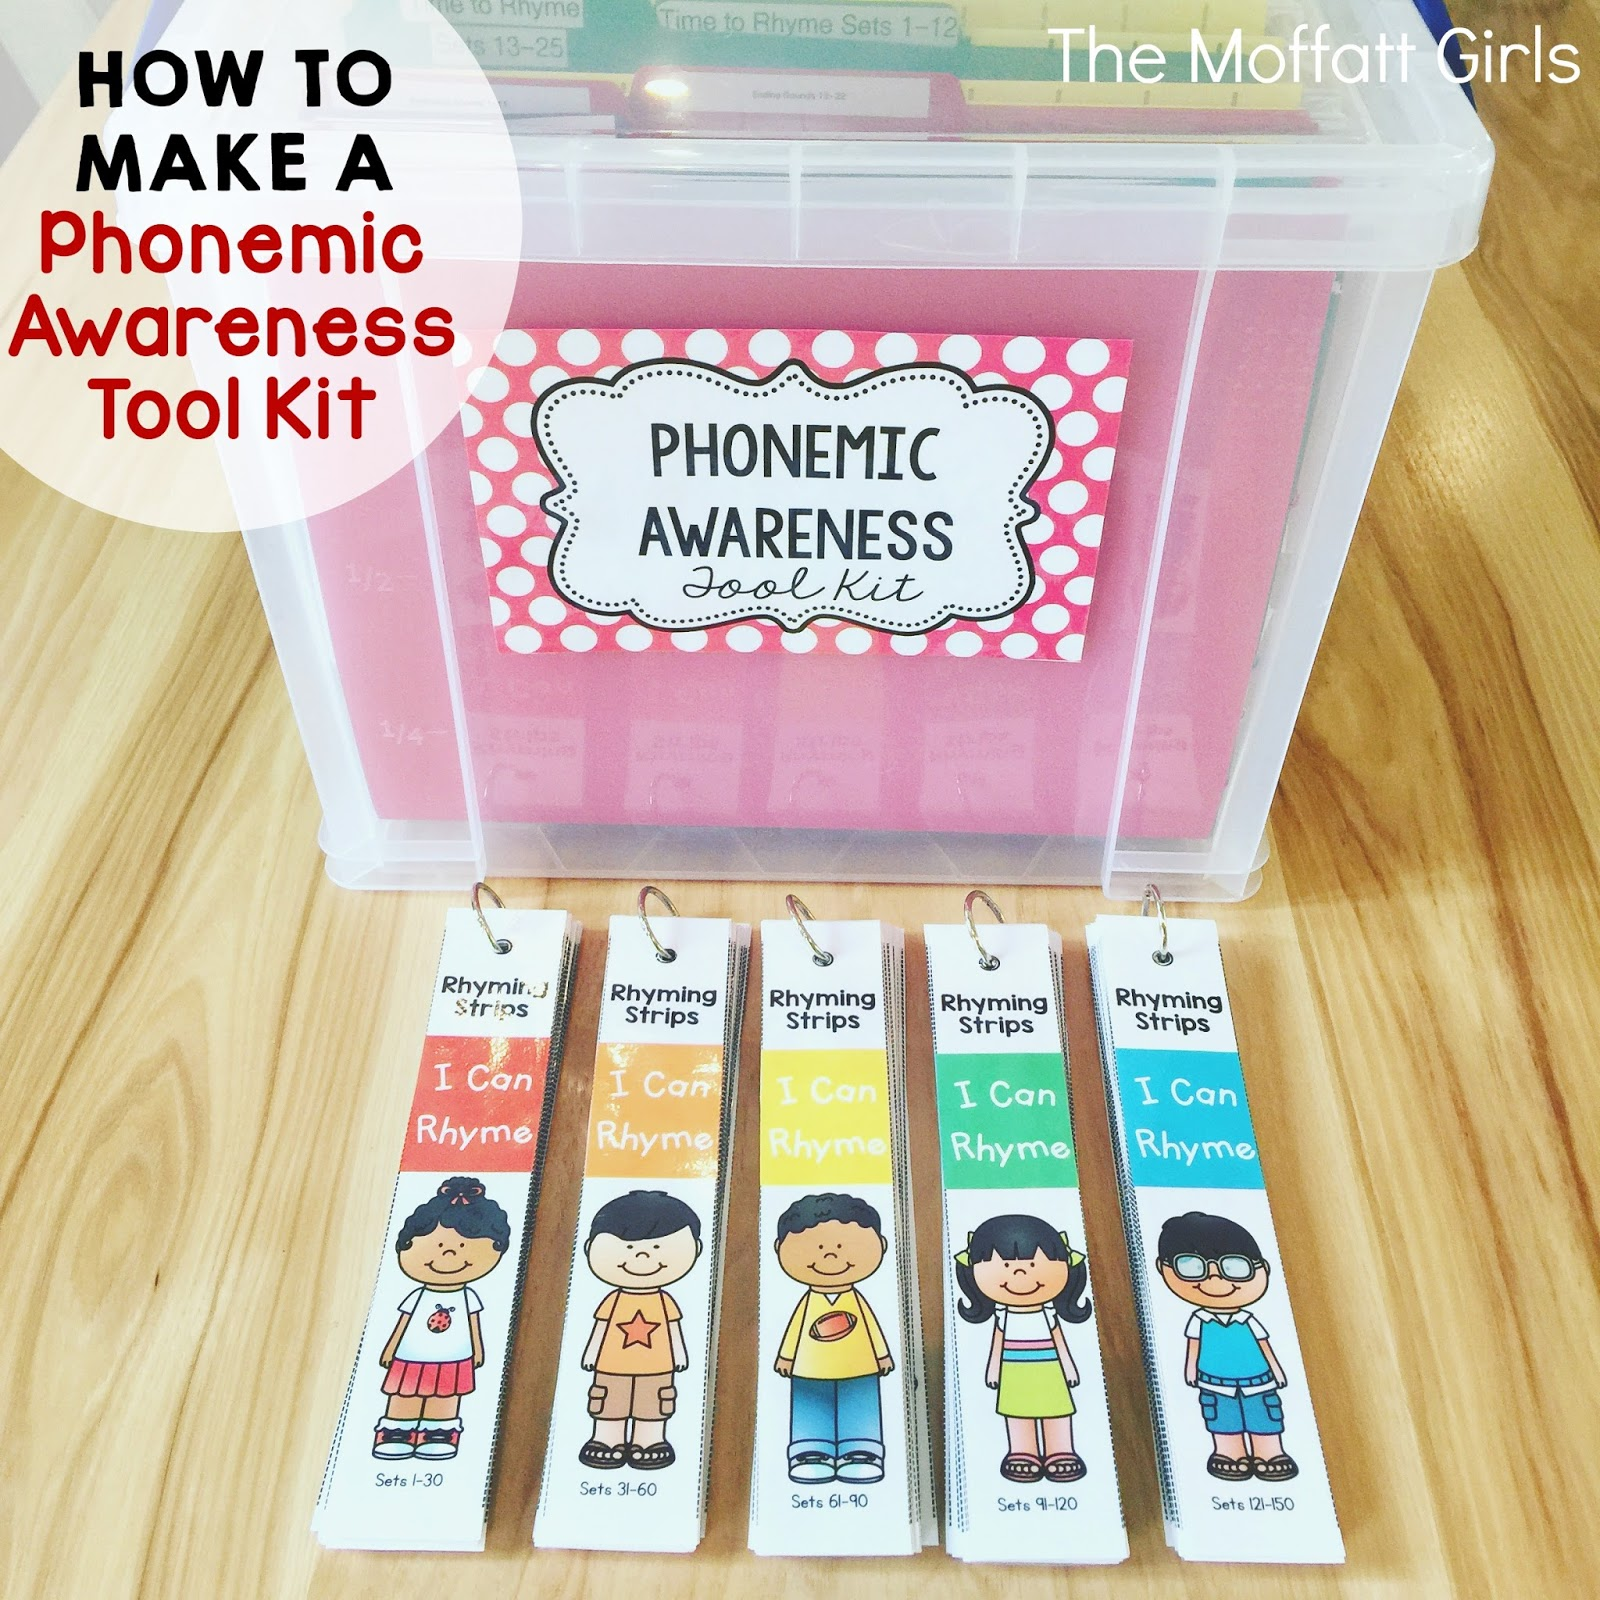 thesis on phonemic awareness The intervention consisted of five phonological awareness activities and one  vocabulary activity  the researcher evaluated the kindergarten students'  phonemic awareness screening data  uc riverside electronic theses and  dissertations.